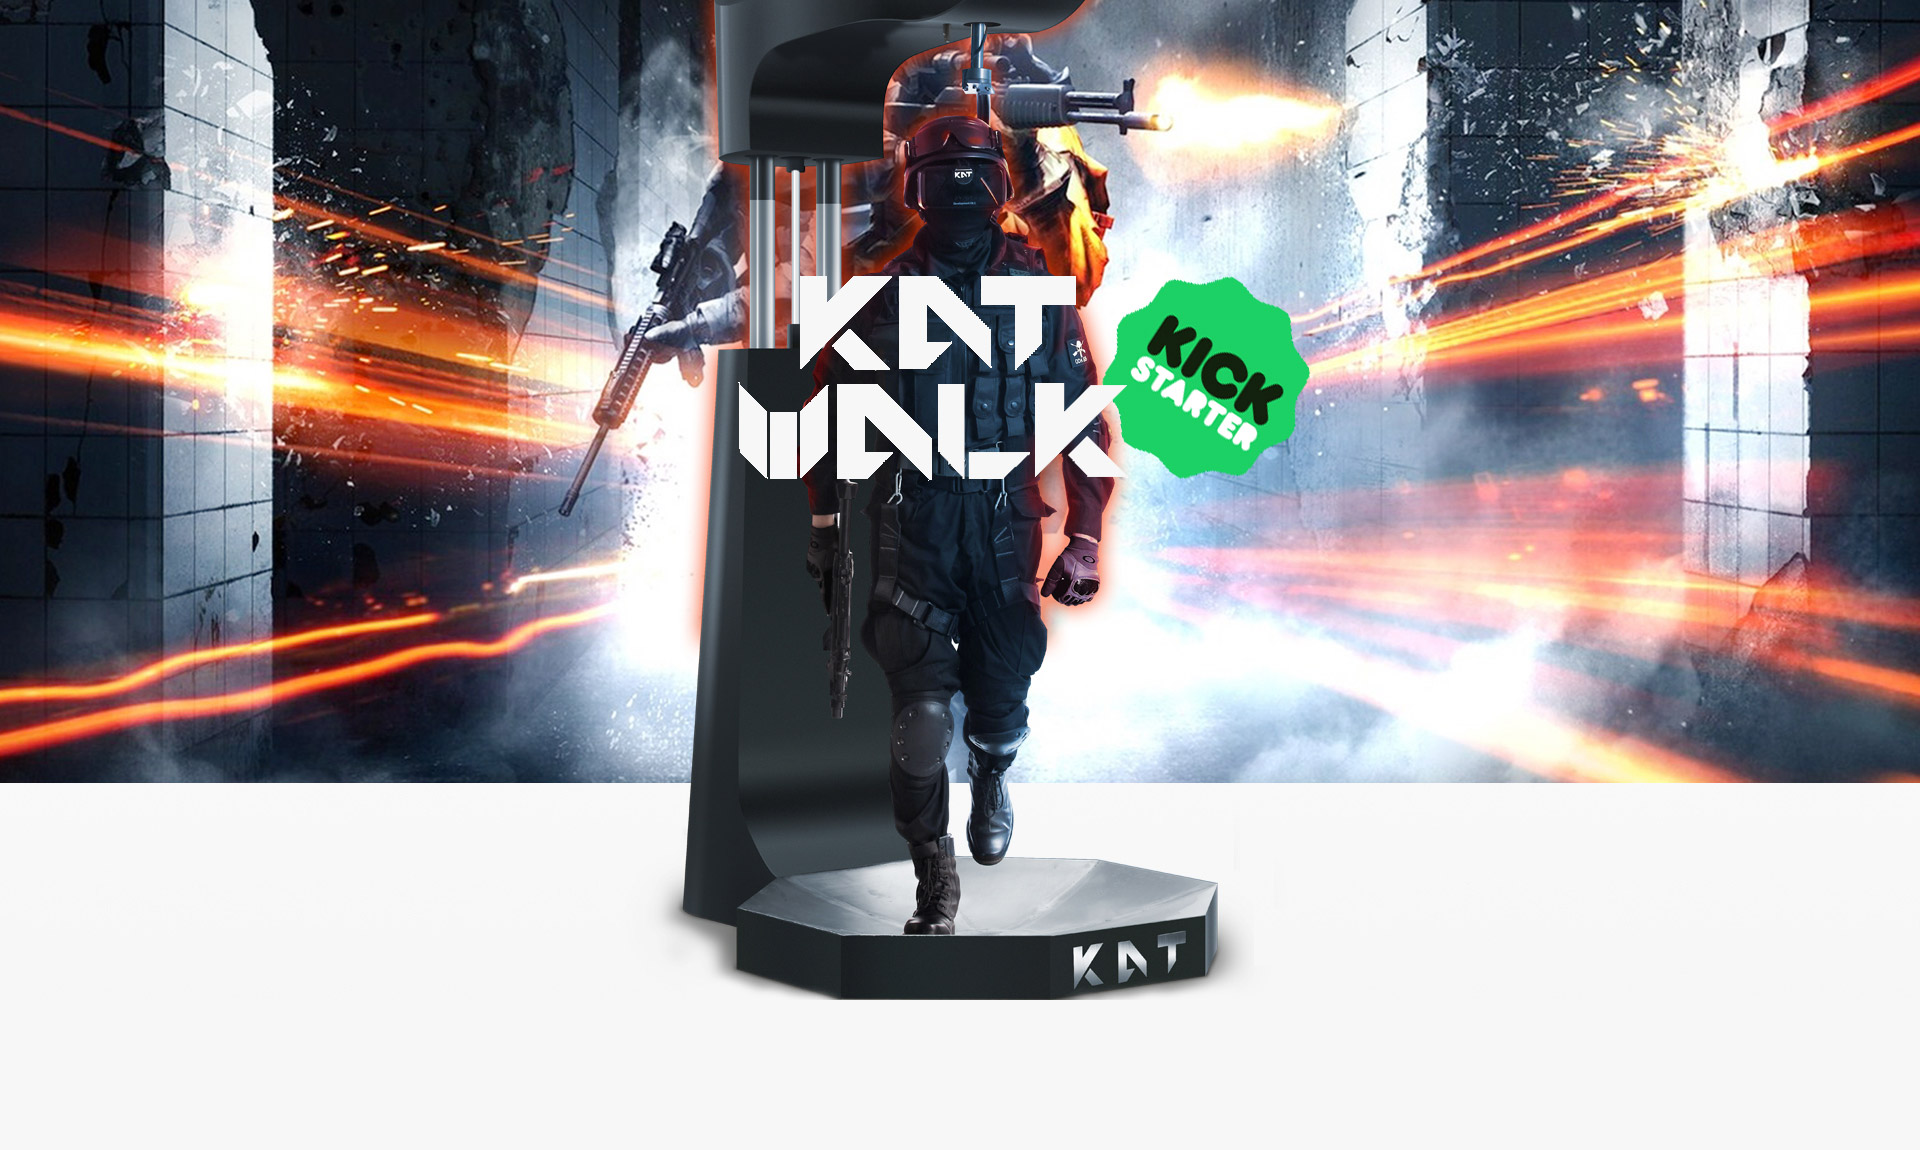 Vr Ready Pc >> 'Kat Walk' Joins the VR Treadmill Race, Approaching $100,000 Goal on Kickstarter – Road to VR